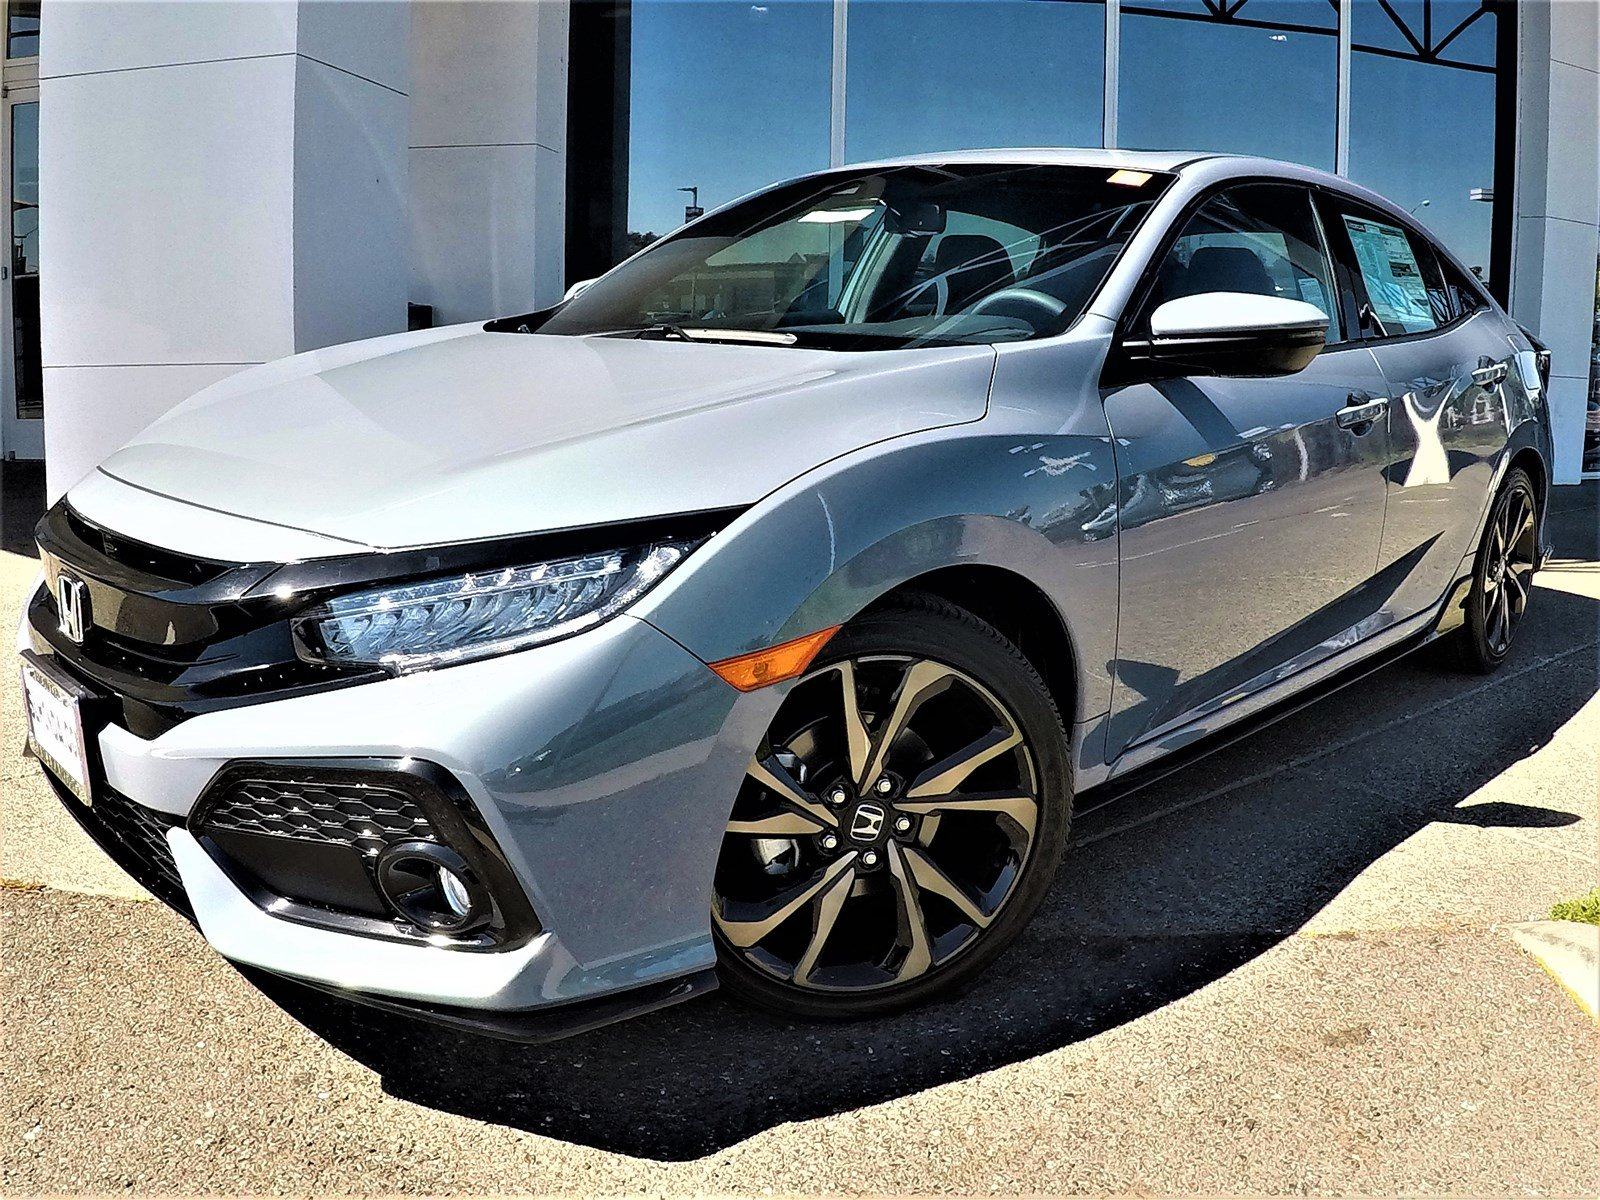 Hondas For Sale Near Me >> 2018 Honda Civic for Sale Event in Oakland Hayward Alameda Bay Area California